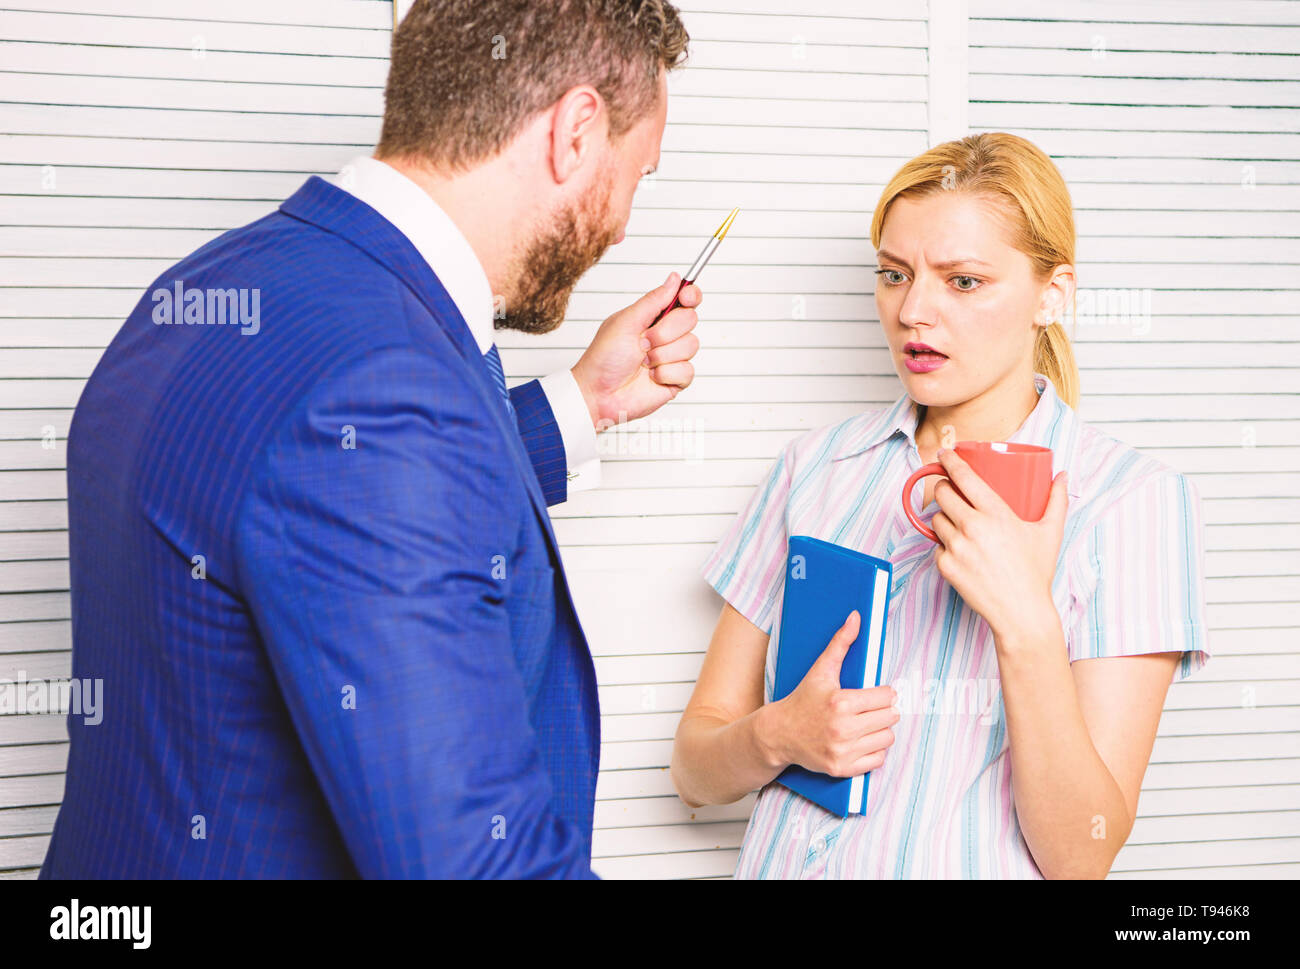 Prejudice and personal attitude to employee. Tense conversation or quarrel between colleagues. Boss discriminate female worker. Discrimination and personal attitude problem. Discrimination concept. - Stock Image